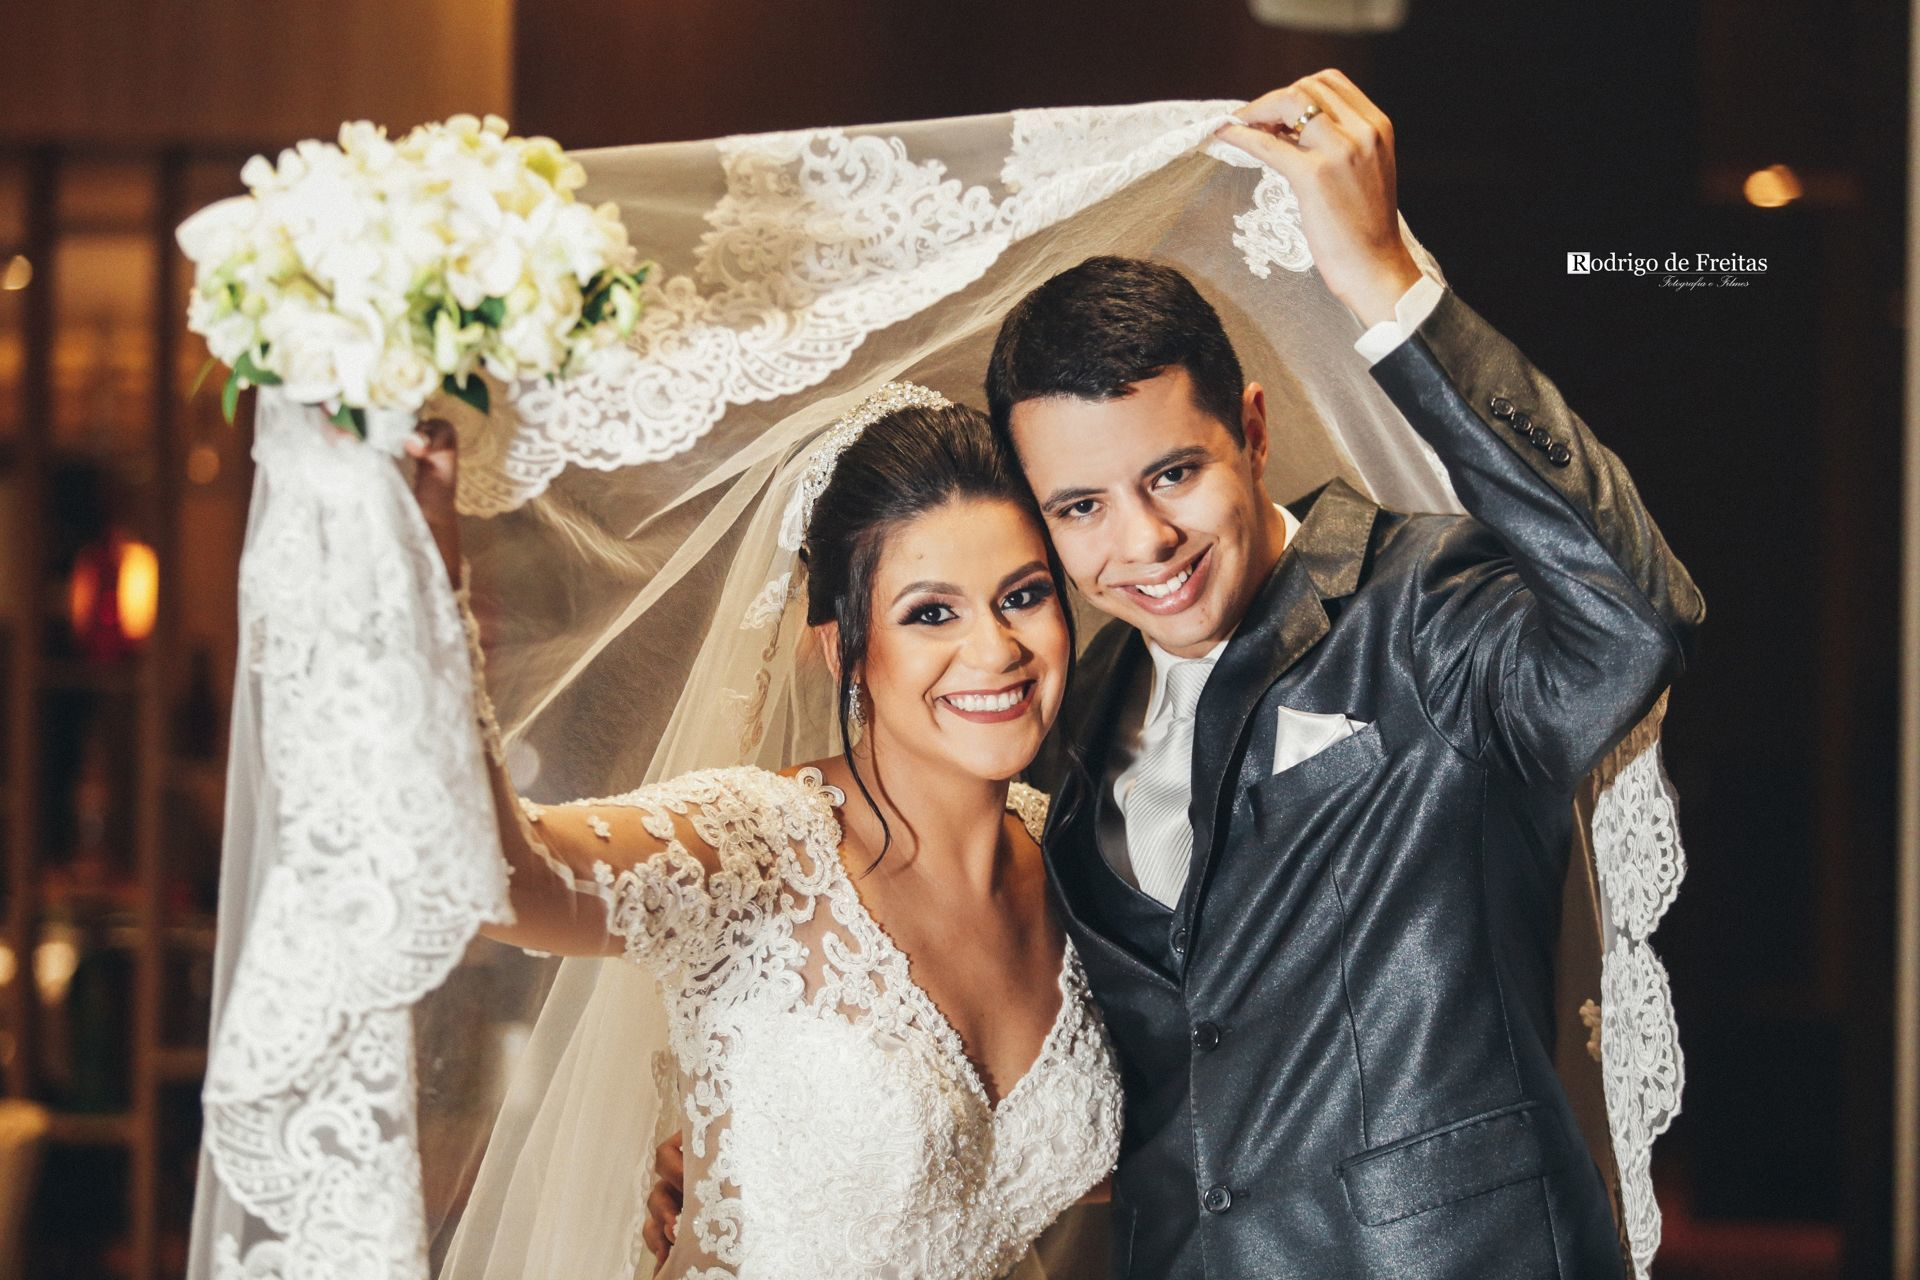 Bárbara + Gustavo / WEDDING DAY